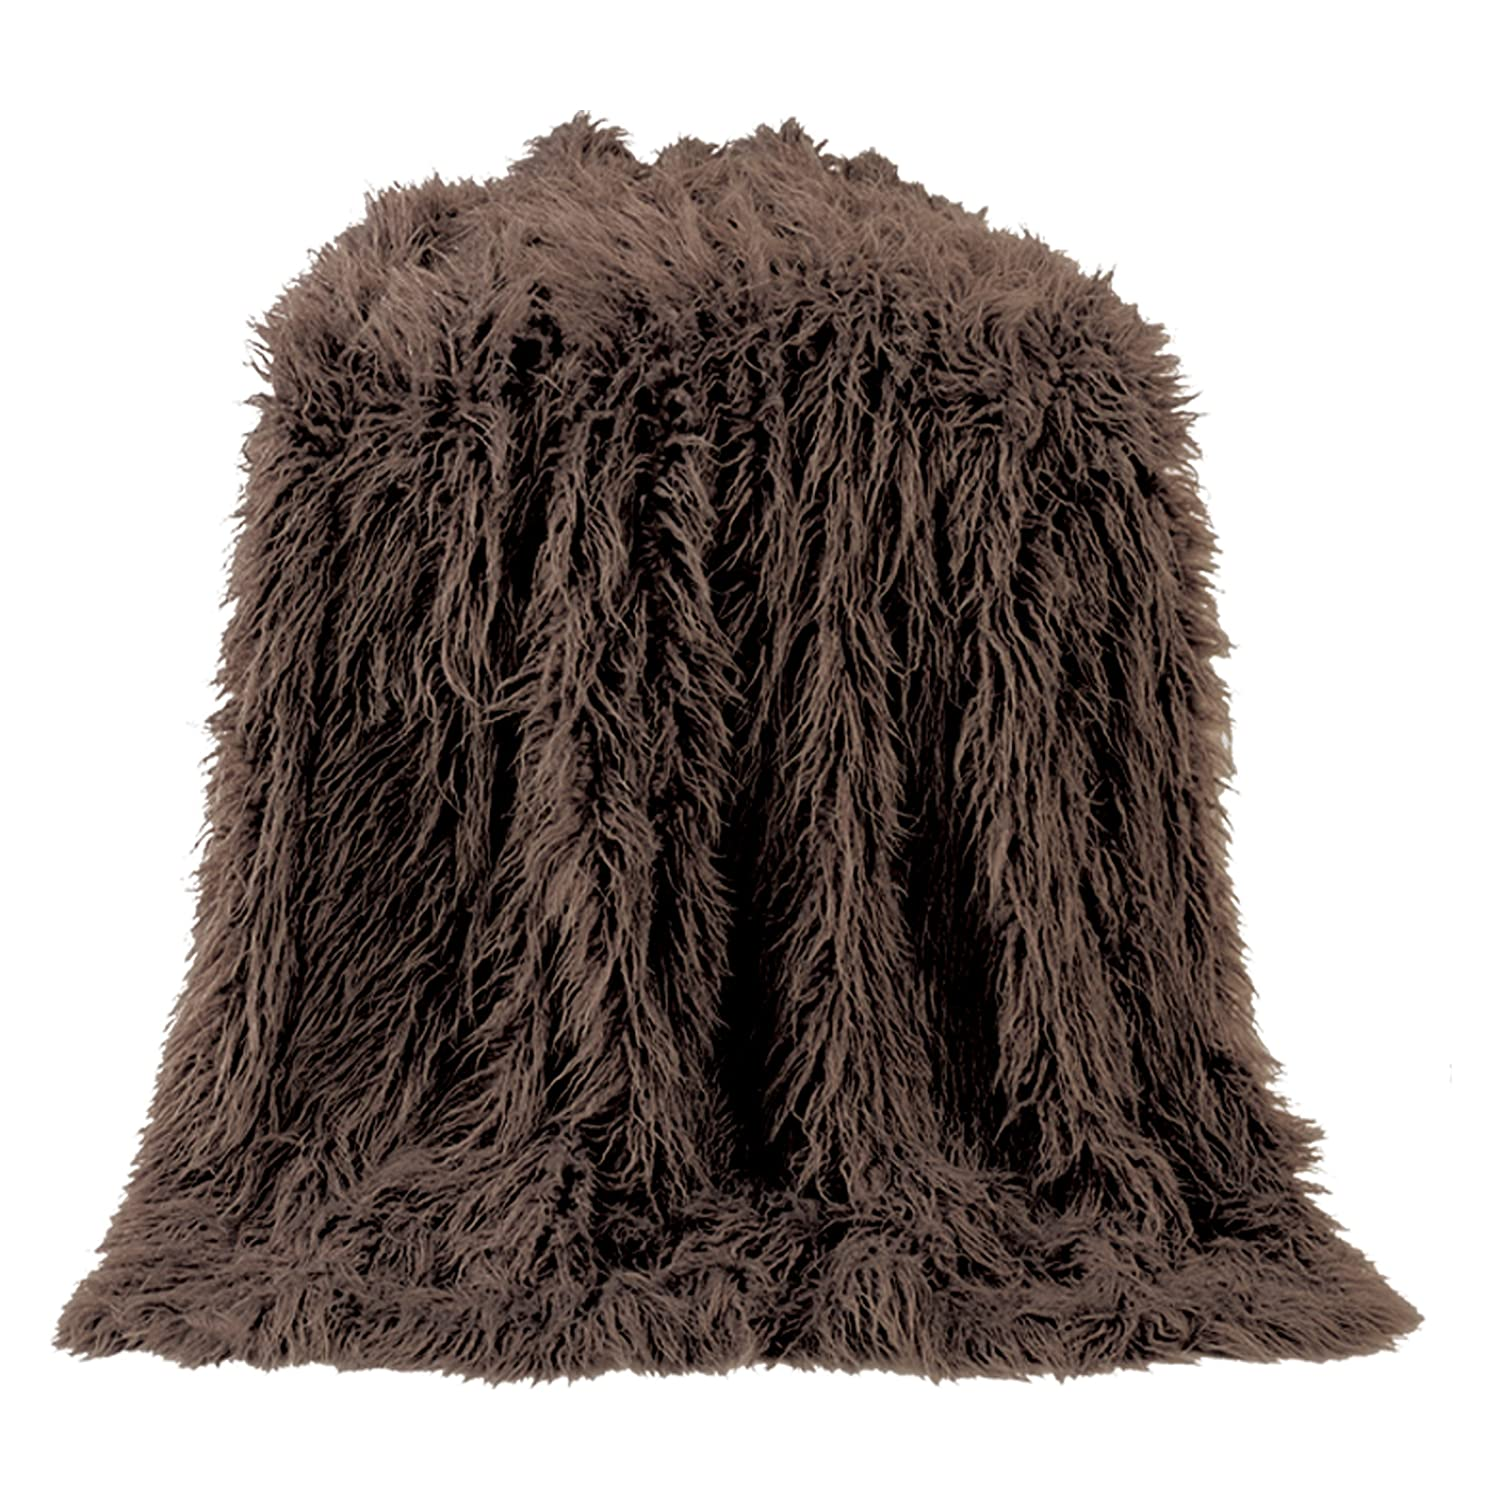 HiEndアクセントMongolian Faux Fur Throw One Size ブラウン TR5003-OS-CH B01FELB1SE チョコレート